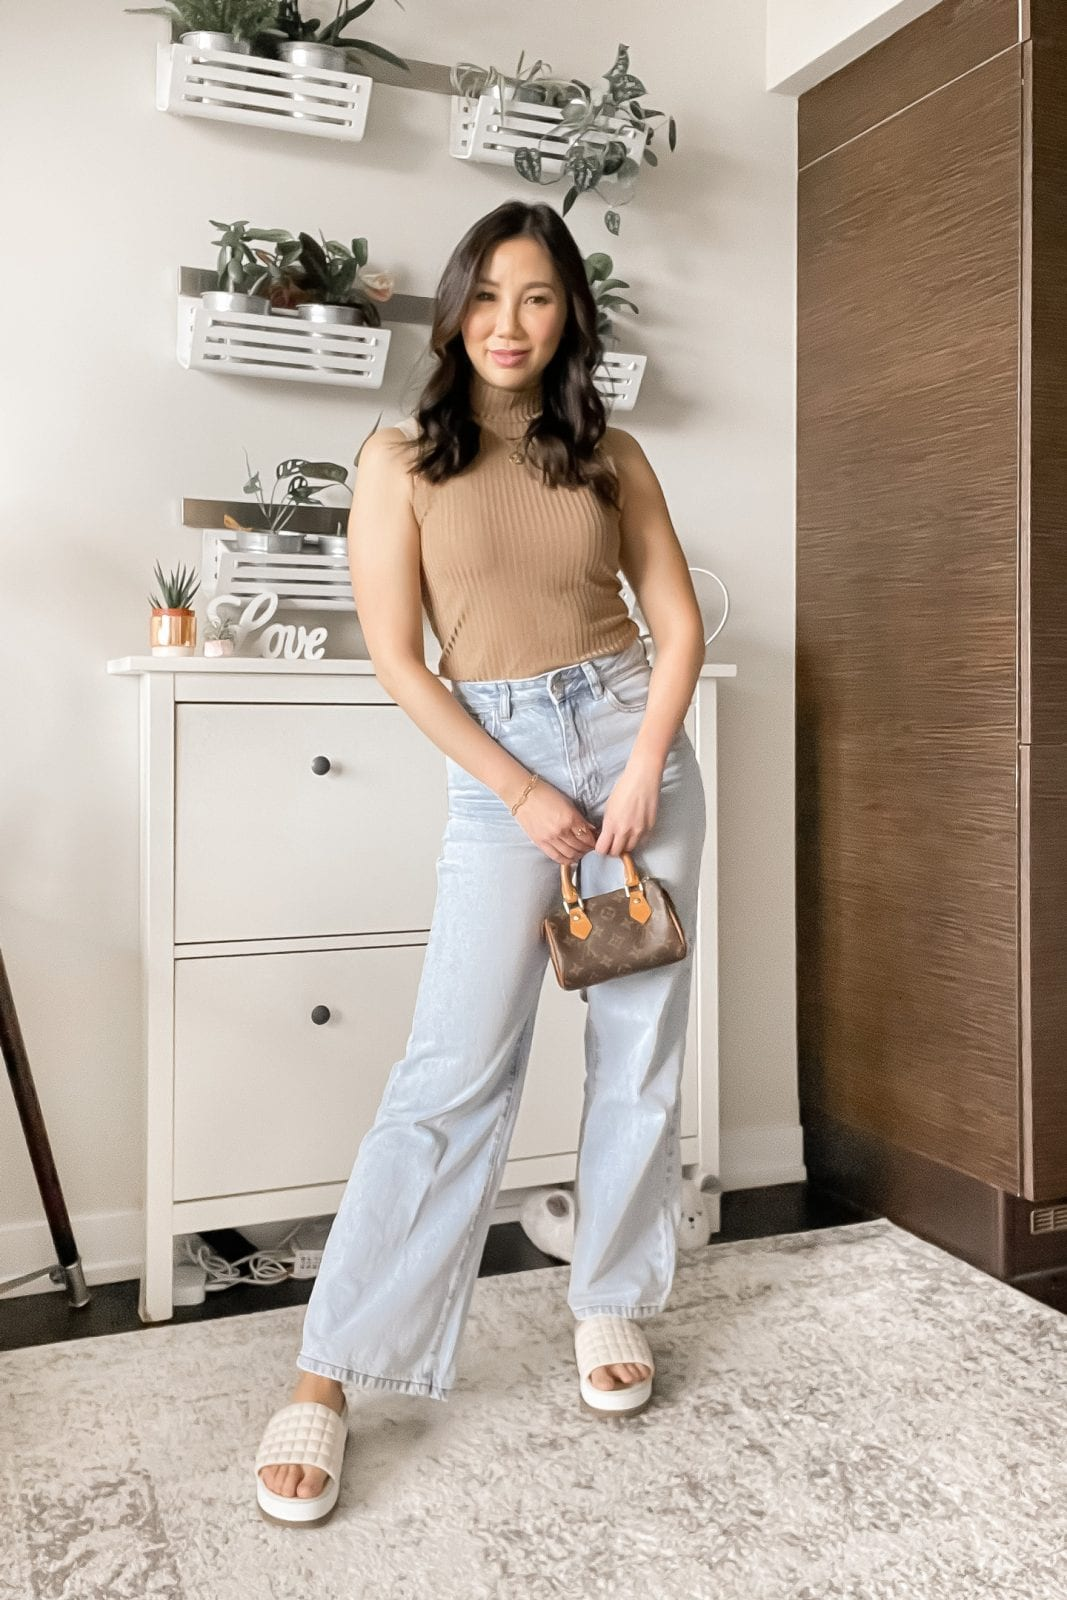 How to style wide leg jeans - Minimal look with wide leg jeans and sleeveless turtleneck